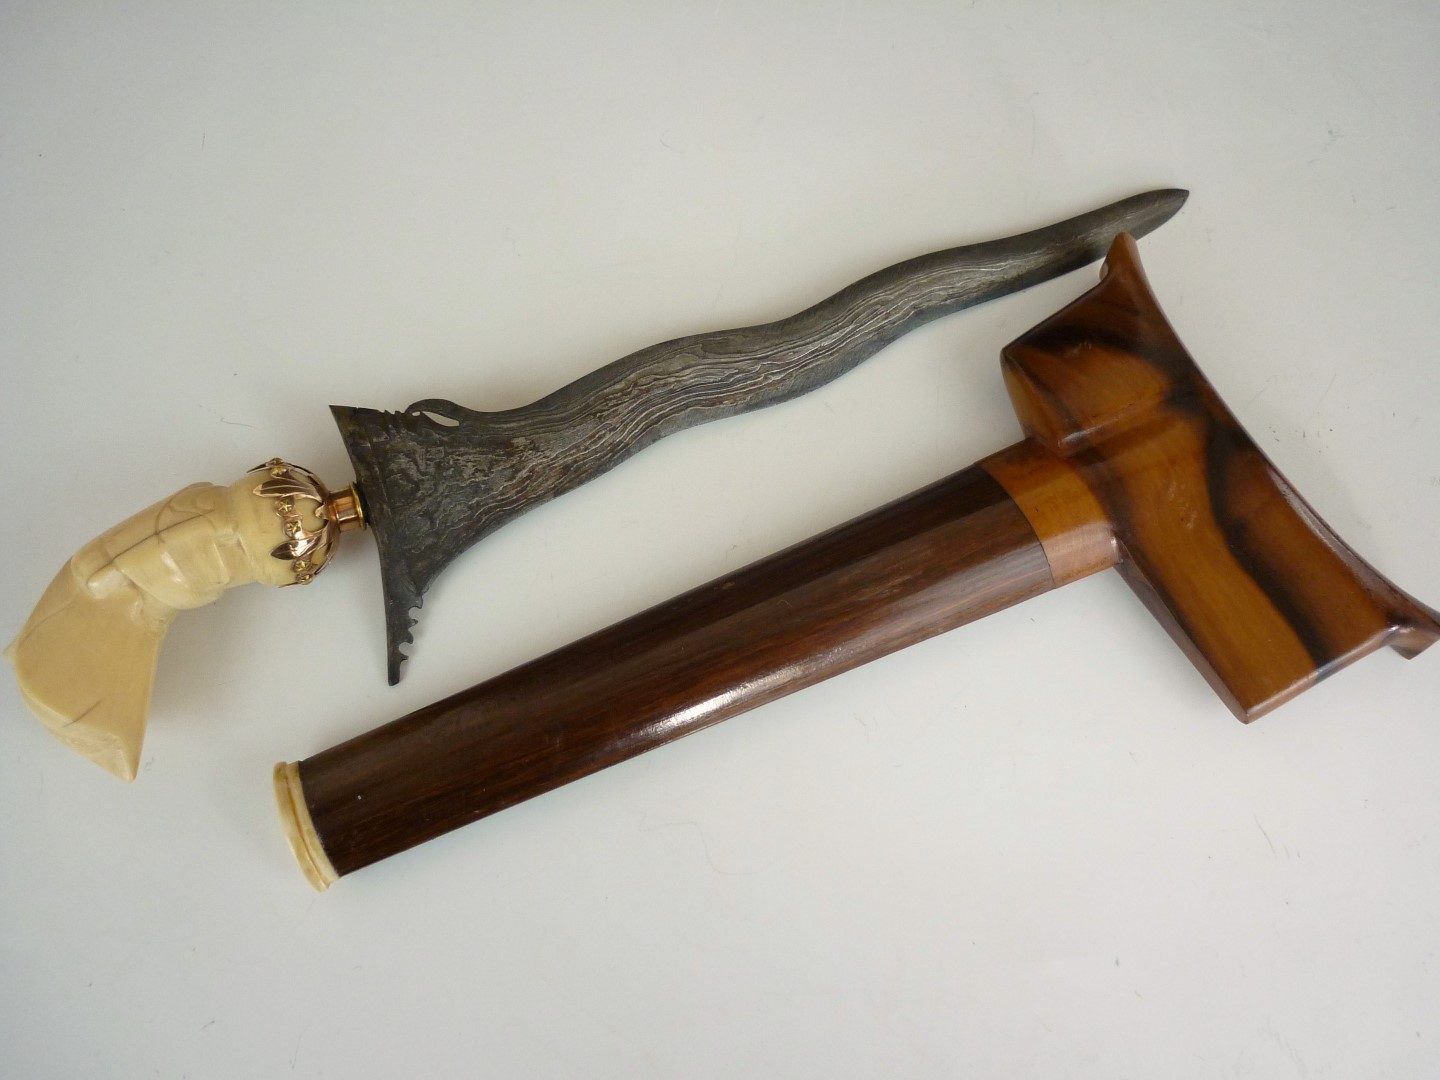 Lot 108 - A Malayan kris with yellow metal mounted carved ivory stylized bird form hilt, wavy blade with